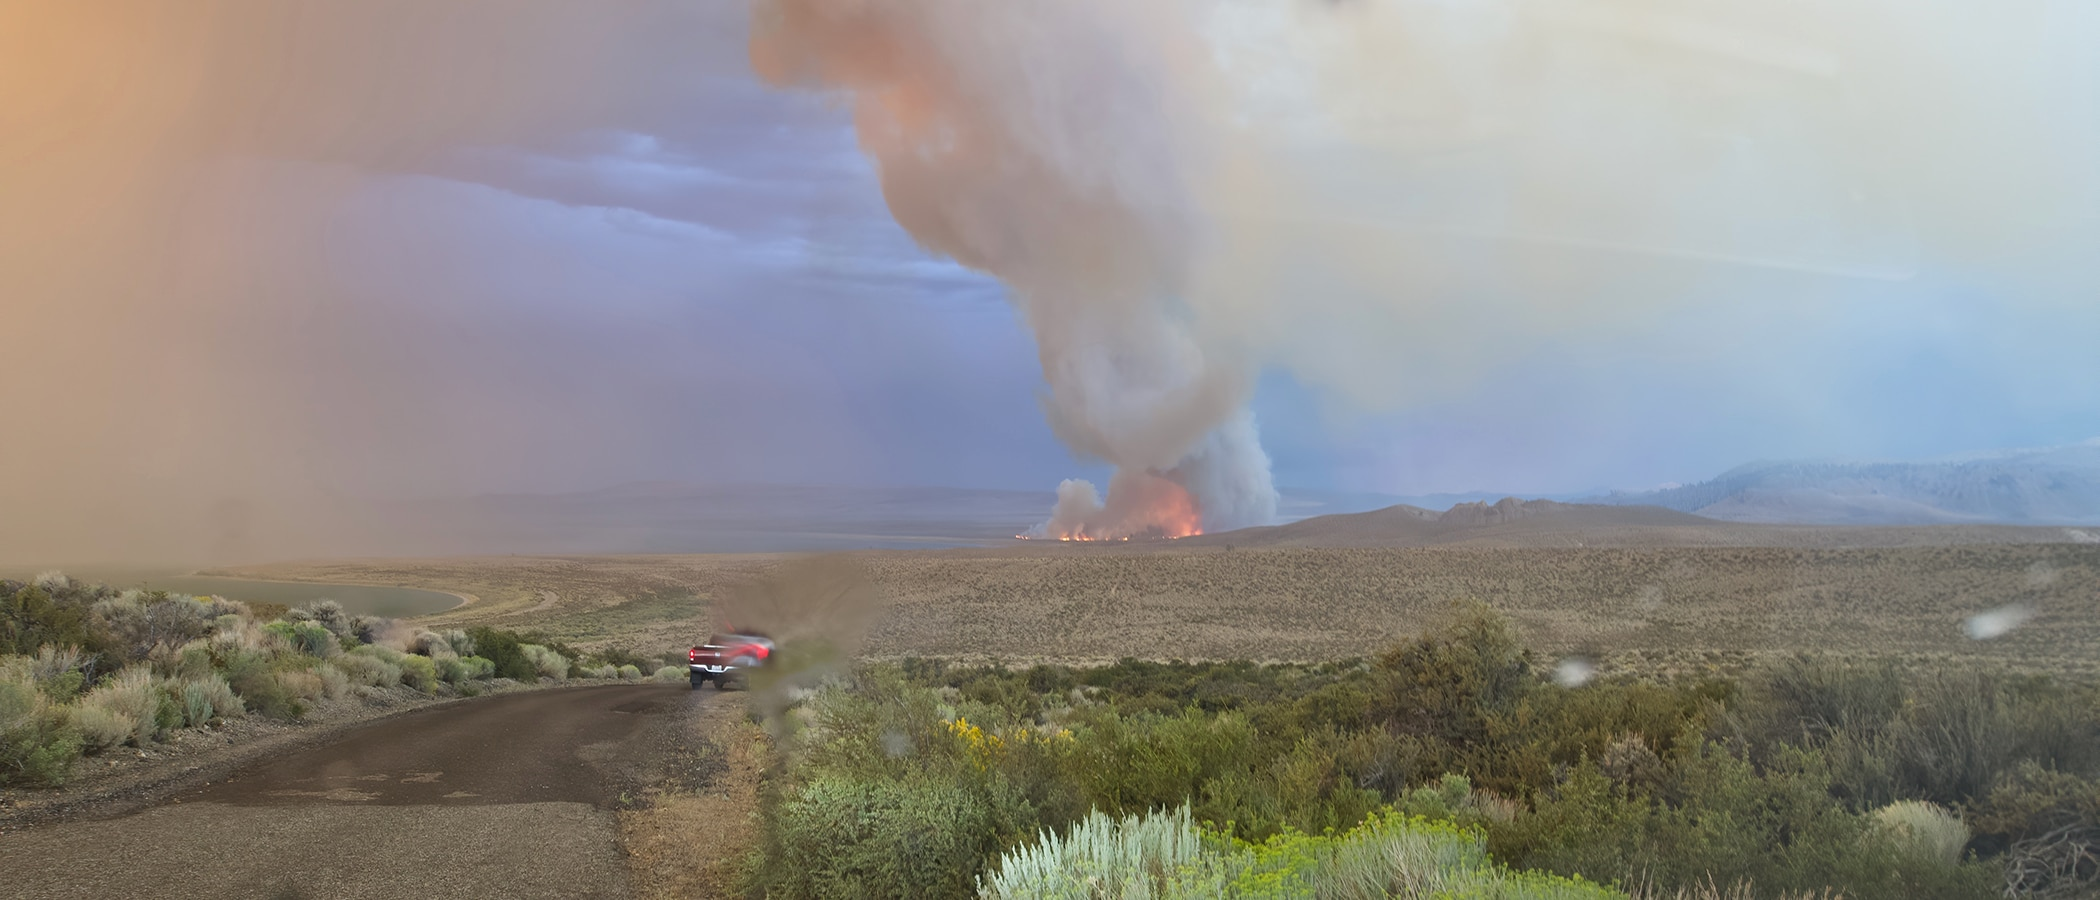 Wildfire flames and plume of smoke along the shore of Mono Lake in the distance with a truck driving down a contry road towards the fire.